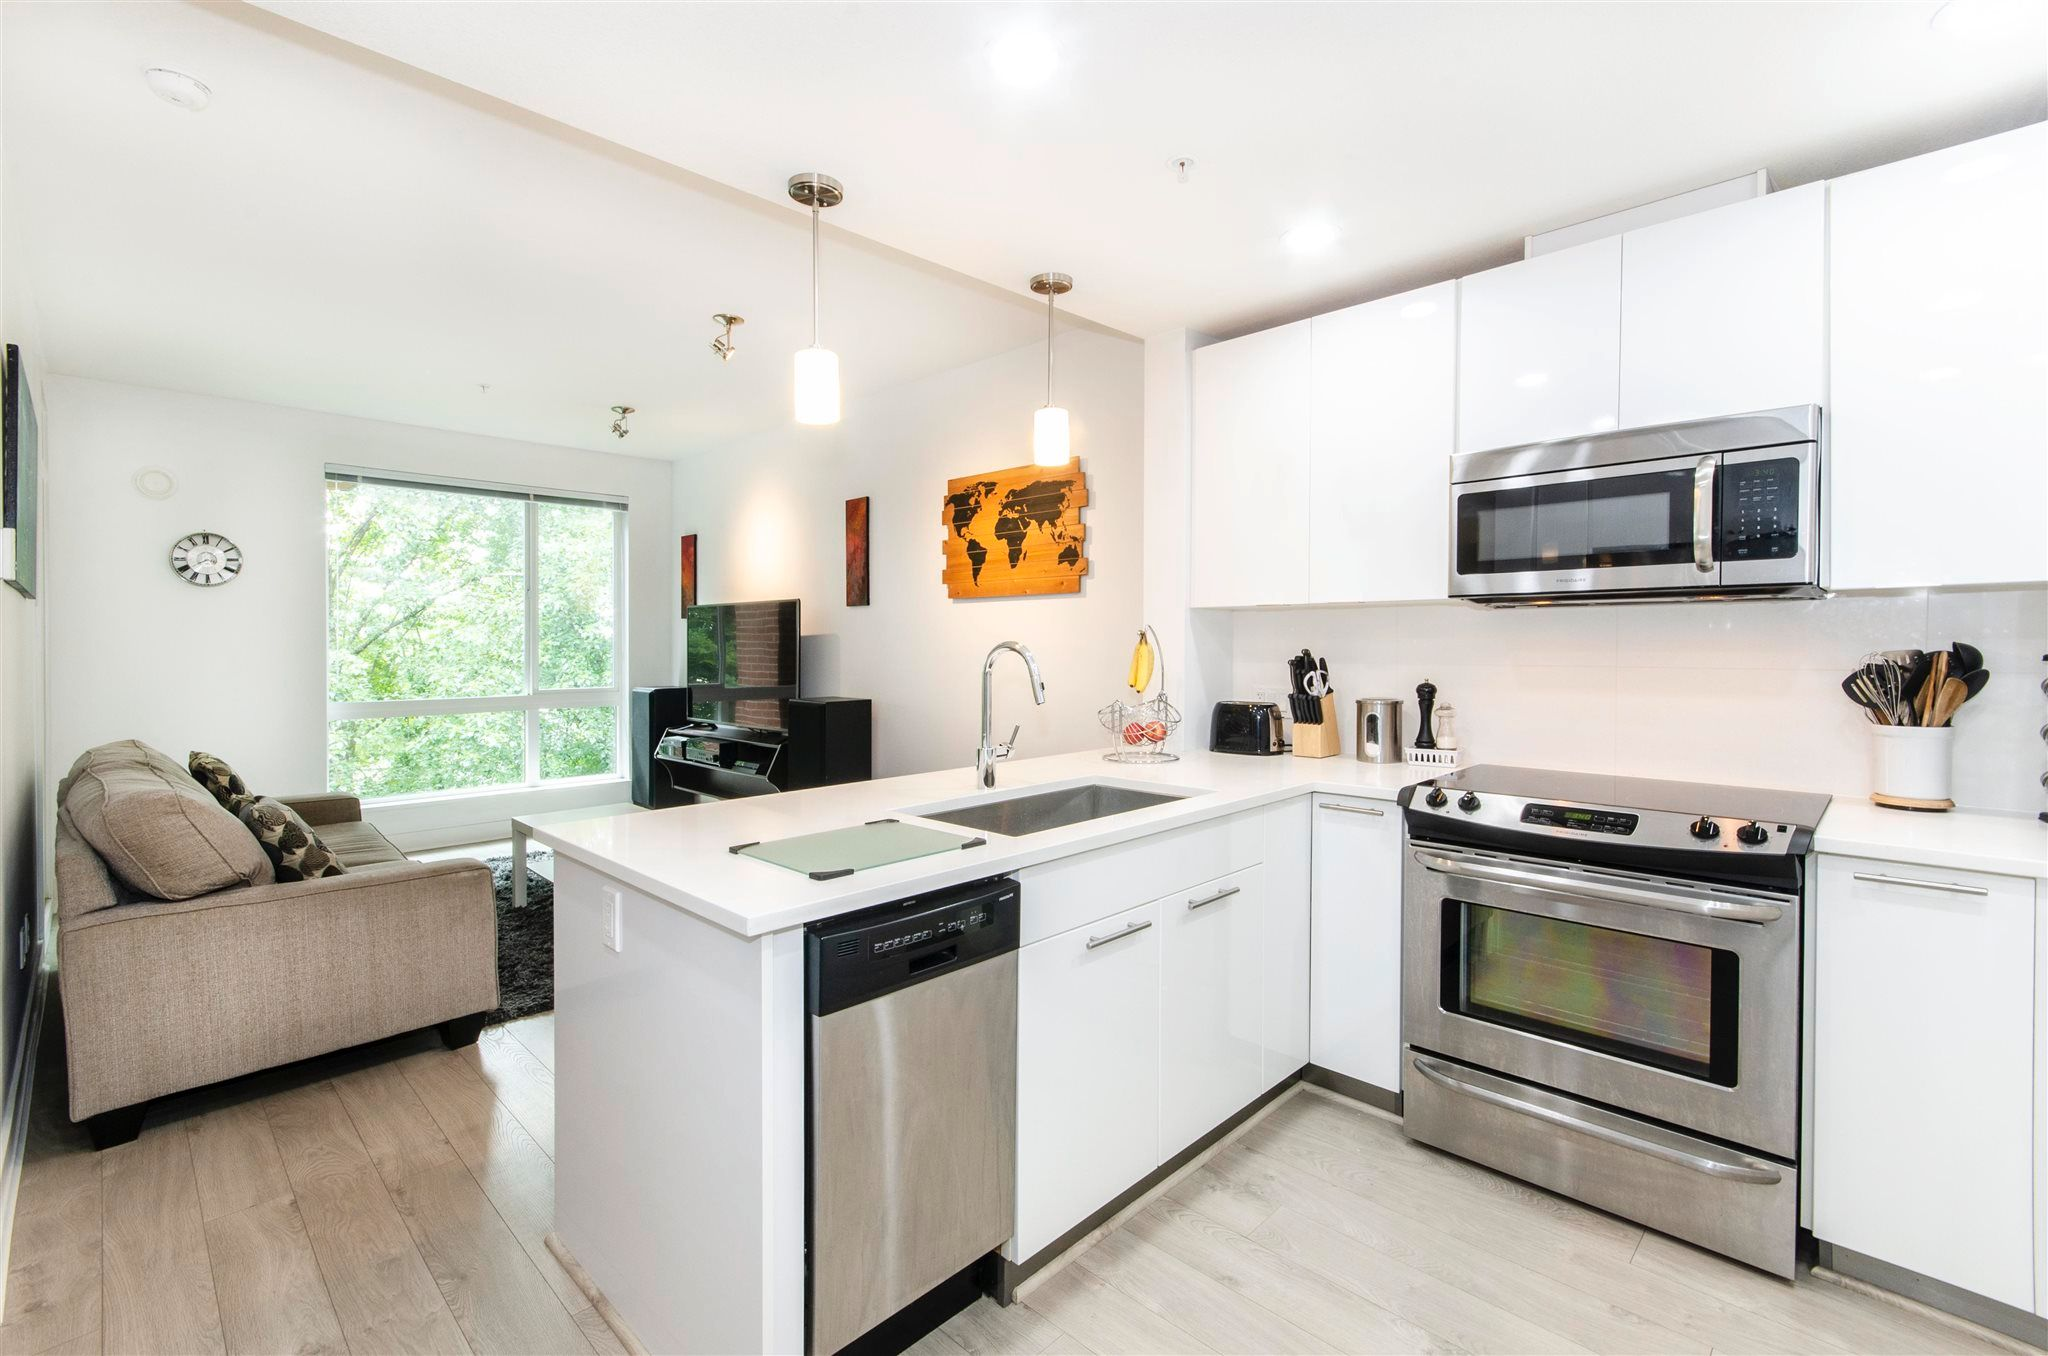 """Main Photo: 404 733 W 3RD Street in North Vancouver: Harbourside Condo for sale in """"The Shore"""" : MLS®# R2603581"""